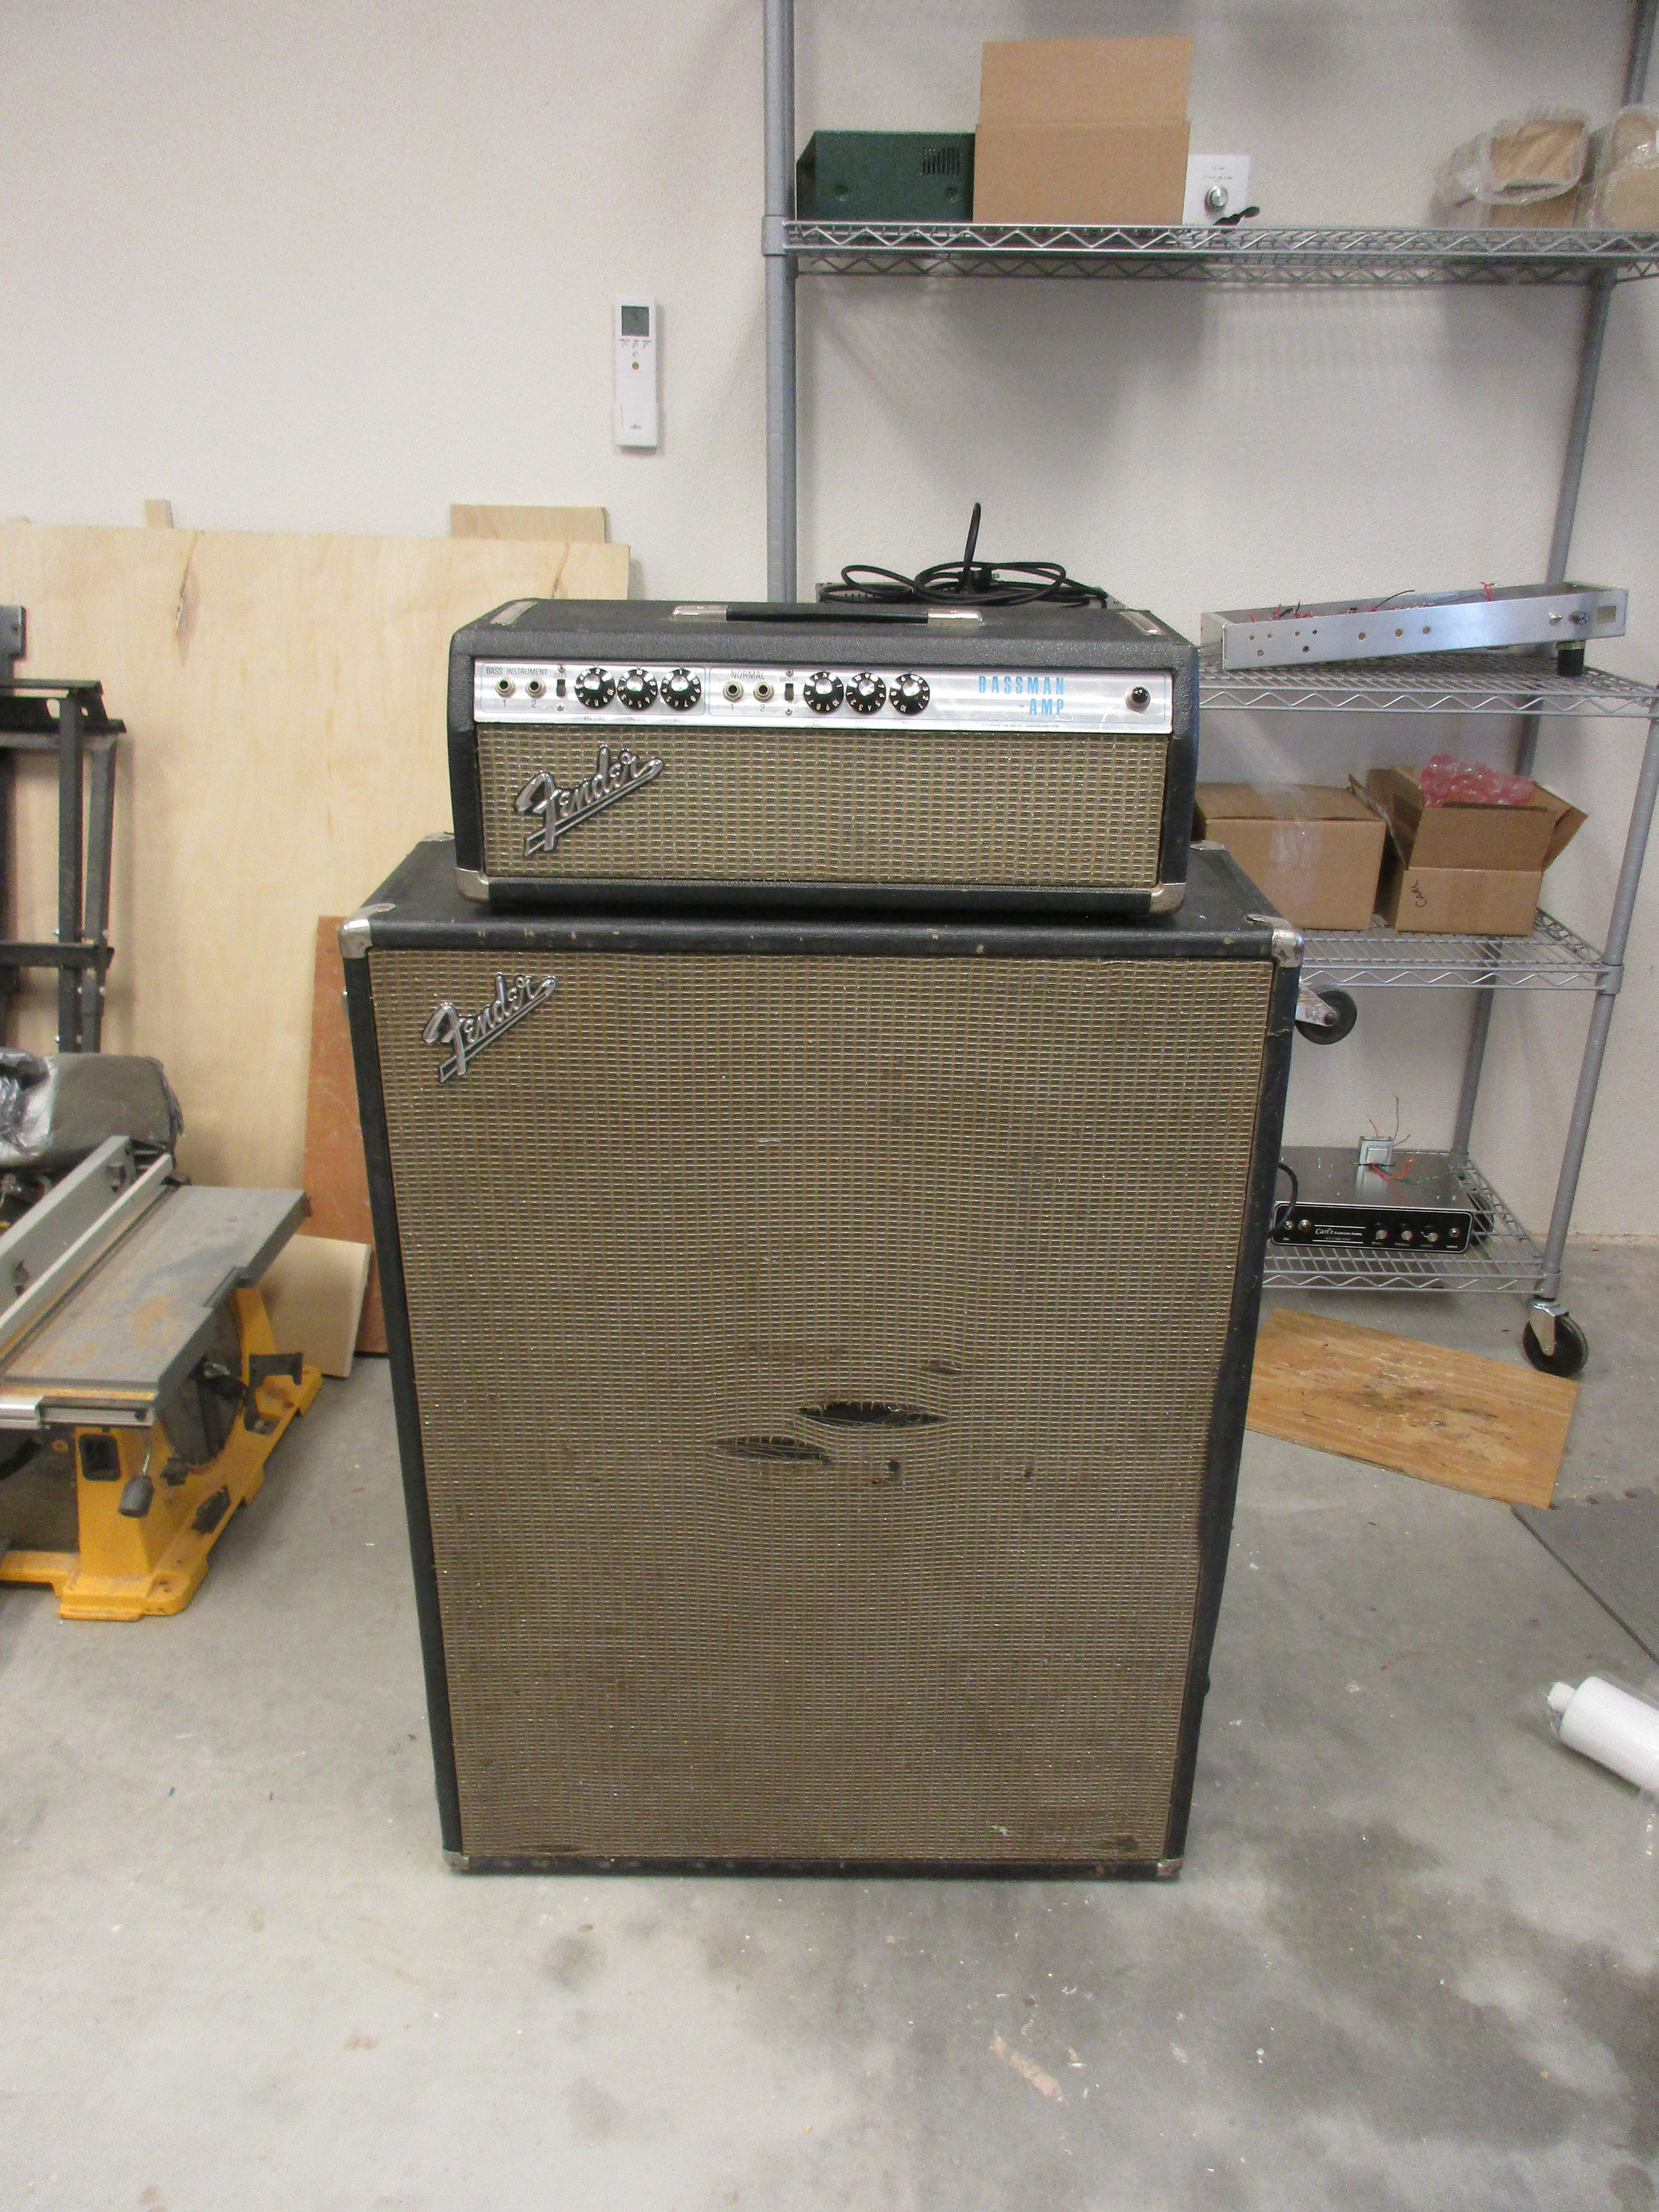 I restored and modded the electronics on this 70's Silverface Bassman with he original 2x15 Cab. It had the dreaded transitional Silverface Bassman circuit that Fender quickly abandoned since sound so bad. I modded it to 60's Blackface specsand she sounds sweet!